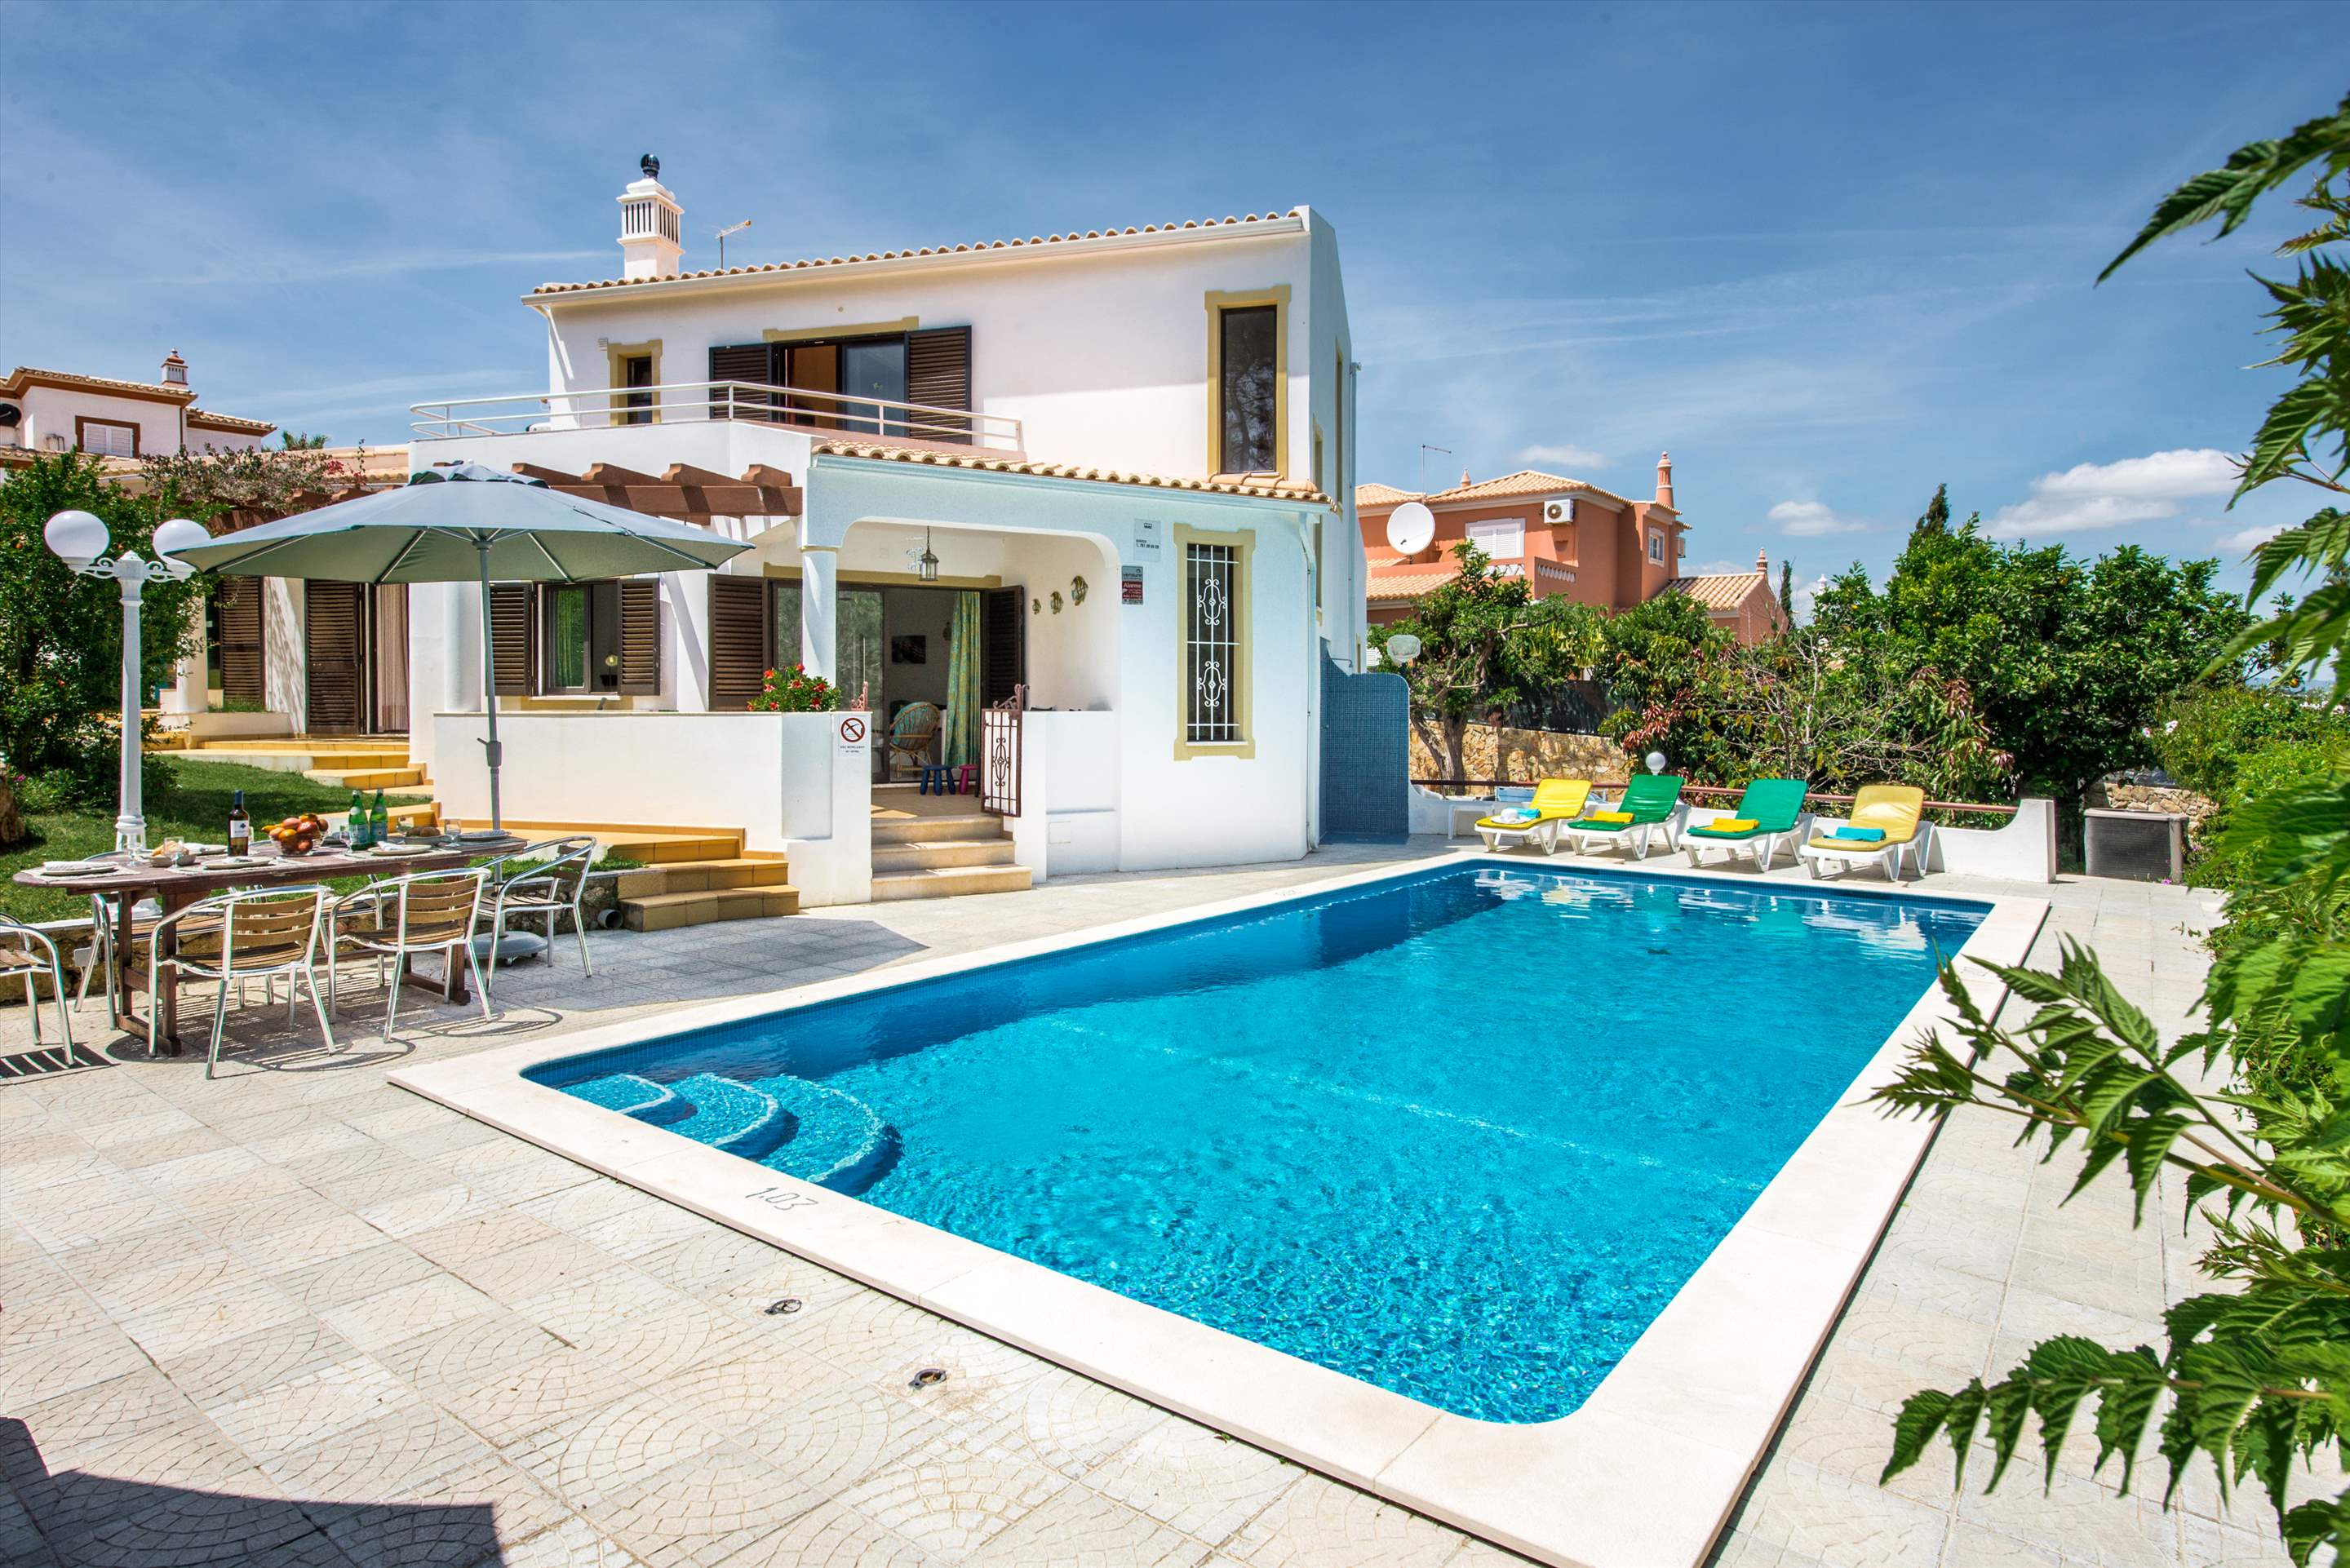 Villa Barros, 7-8 persons rate, 4 bedroom villa in Gale, Vale da Parra and Guia, Algarve